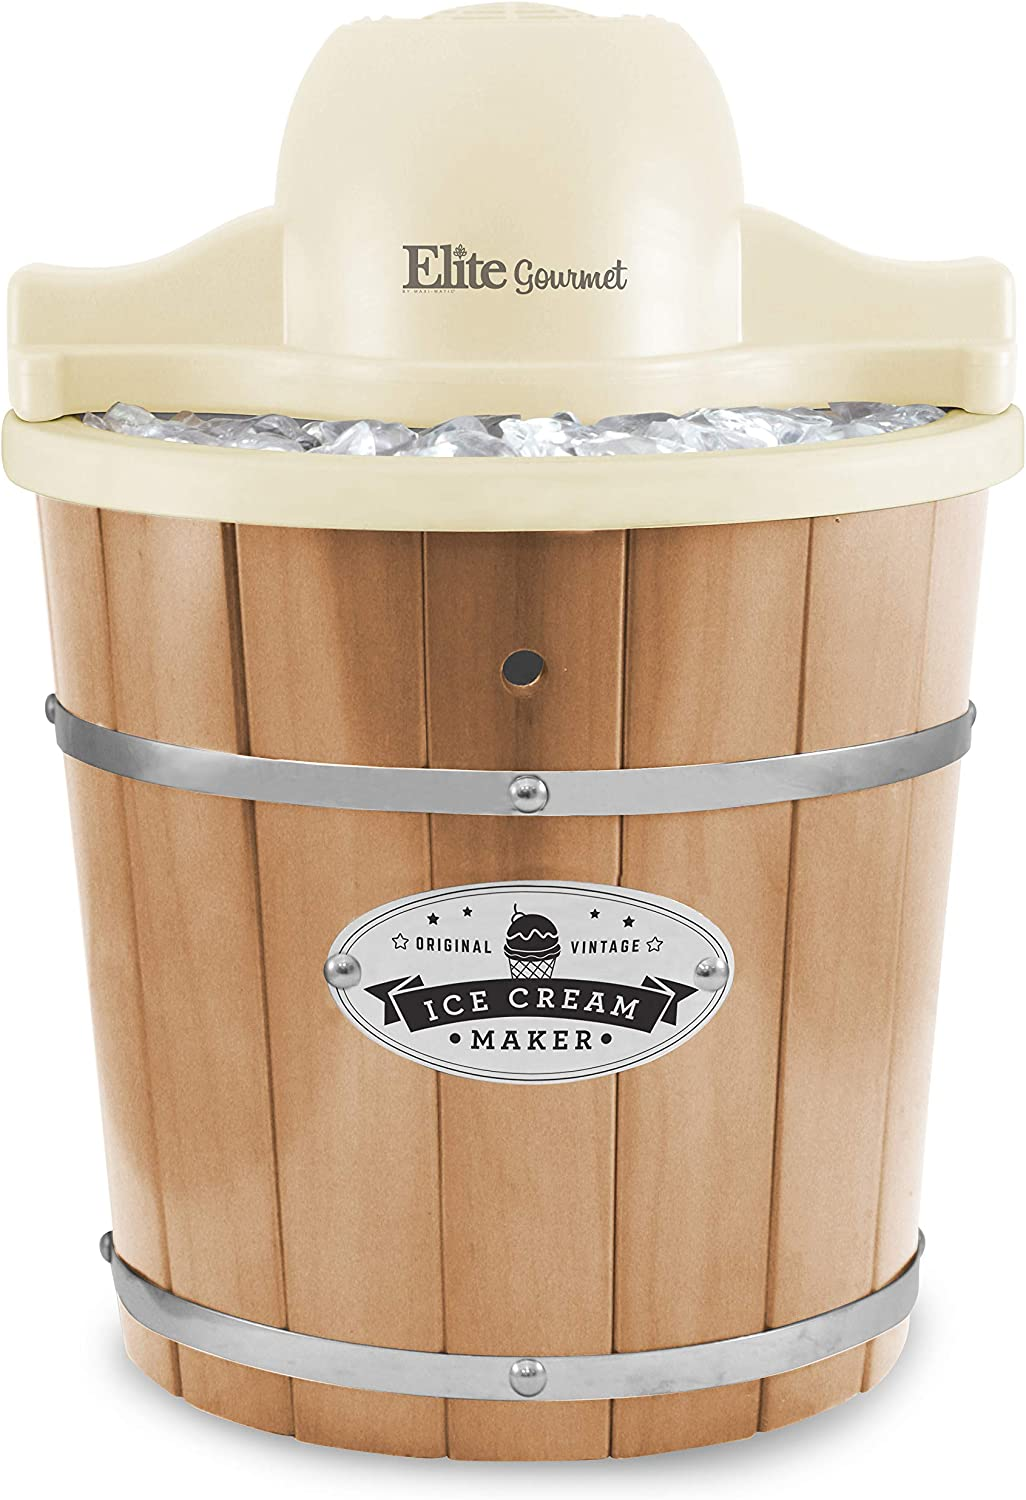 Elite Gourmet Electric Motorized Ice Cream Maker